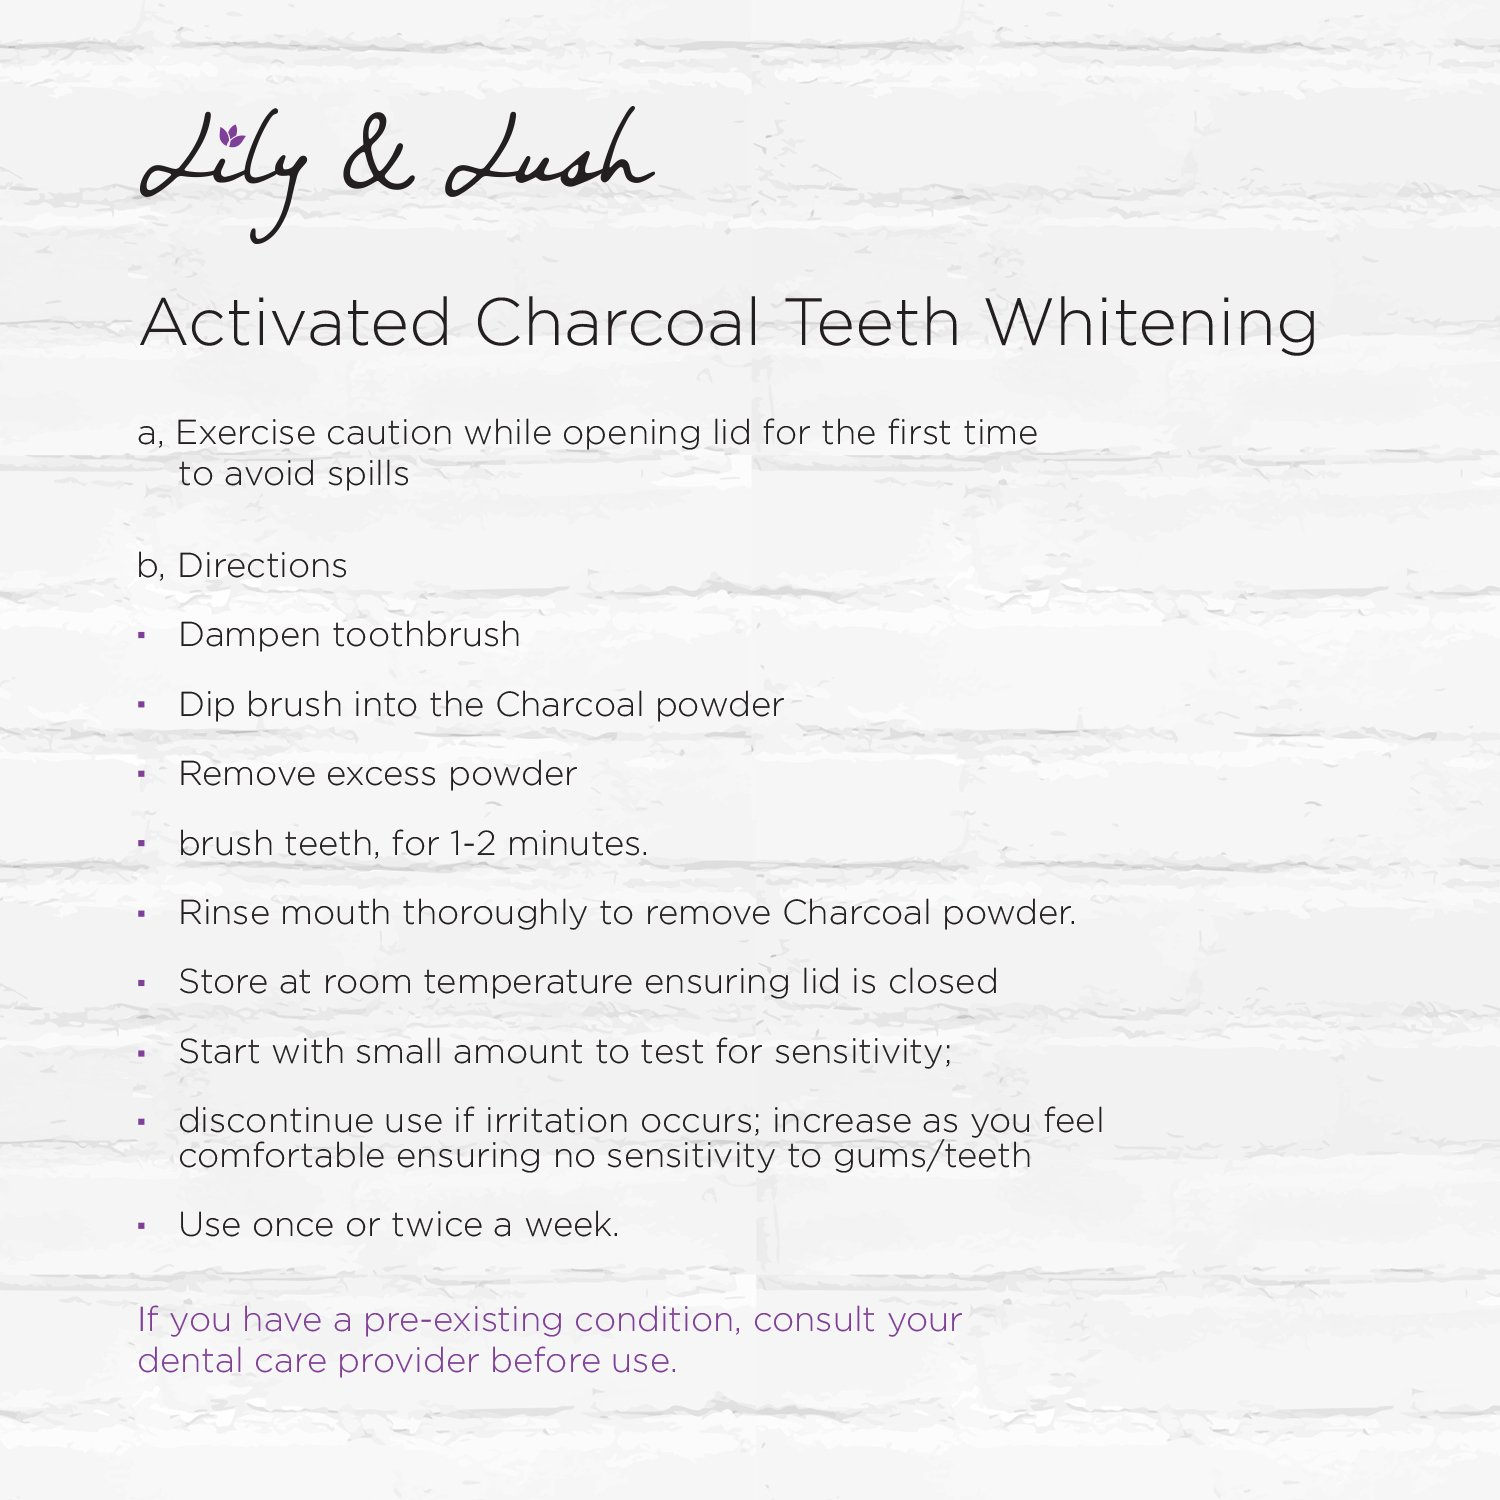 Amazon.com : Lily & Lush Coconut Activated Charcoal Teeth Whitening ...